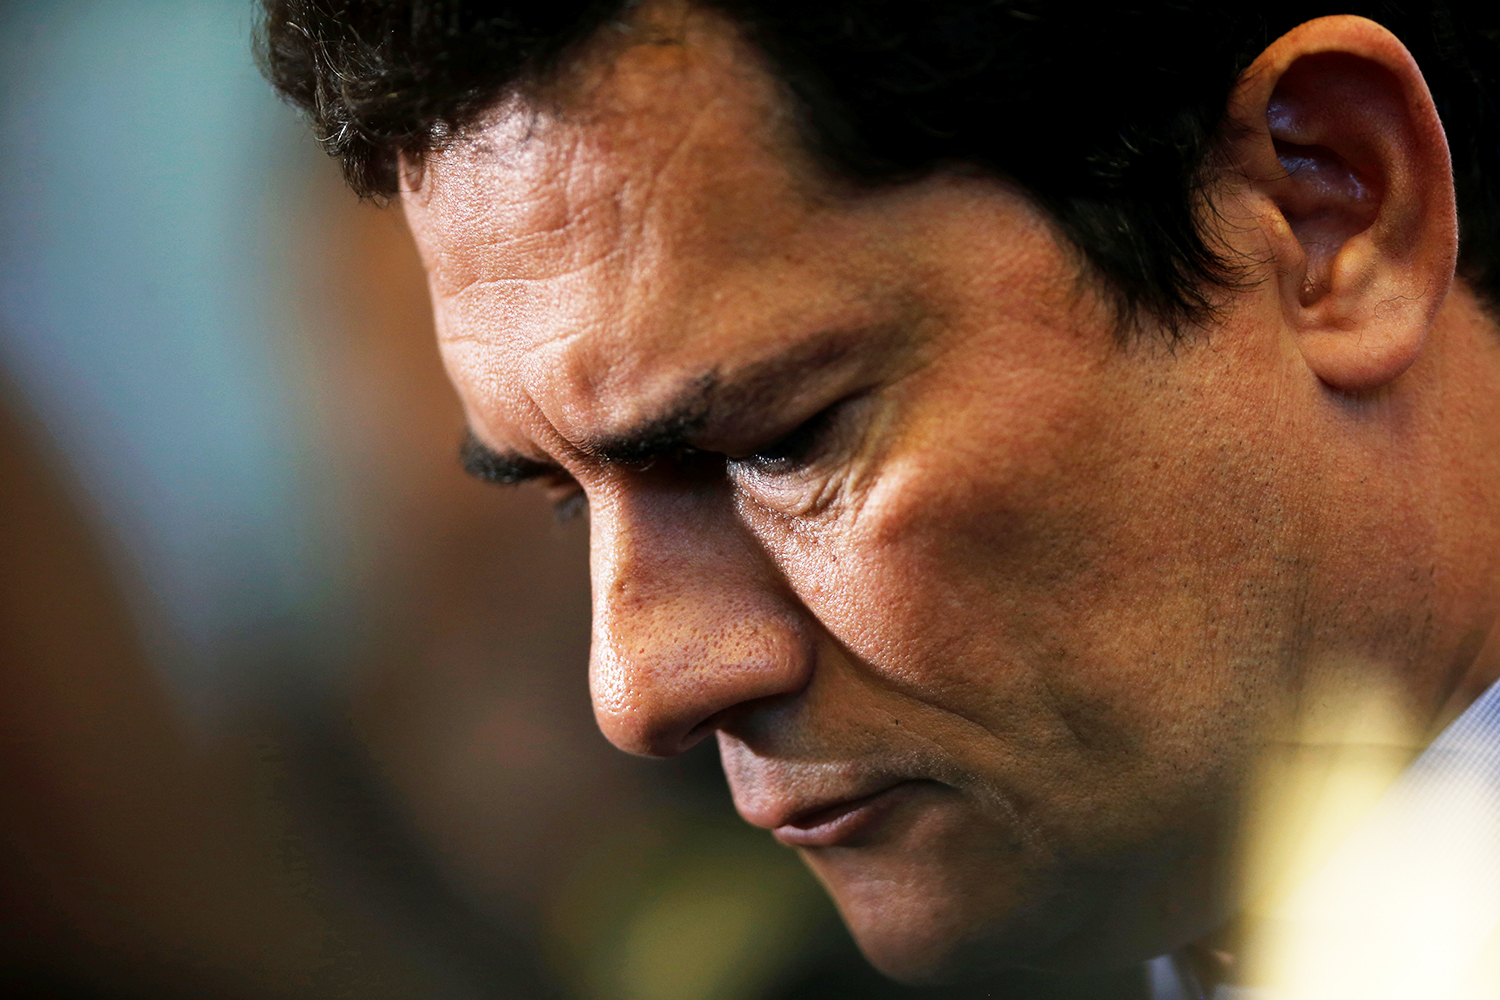 Brazil's Justice Minister Sergio Moro attends a ceremony at the Integrated Center of Command and National Control (CICCN) in Brasilia, Brazil June 14, 2019. REUTERS/Adriano Machado